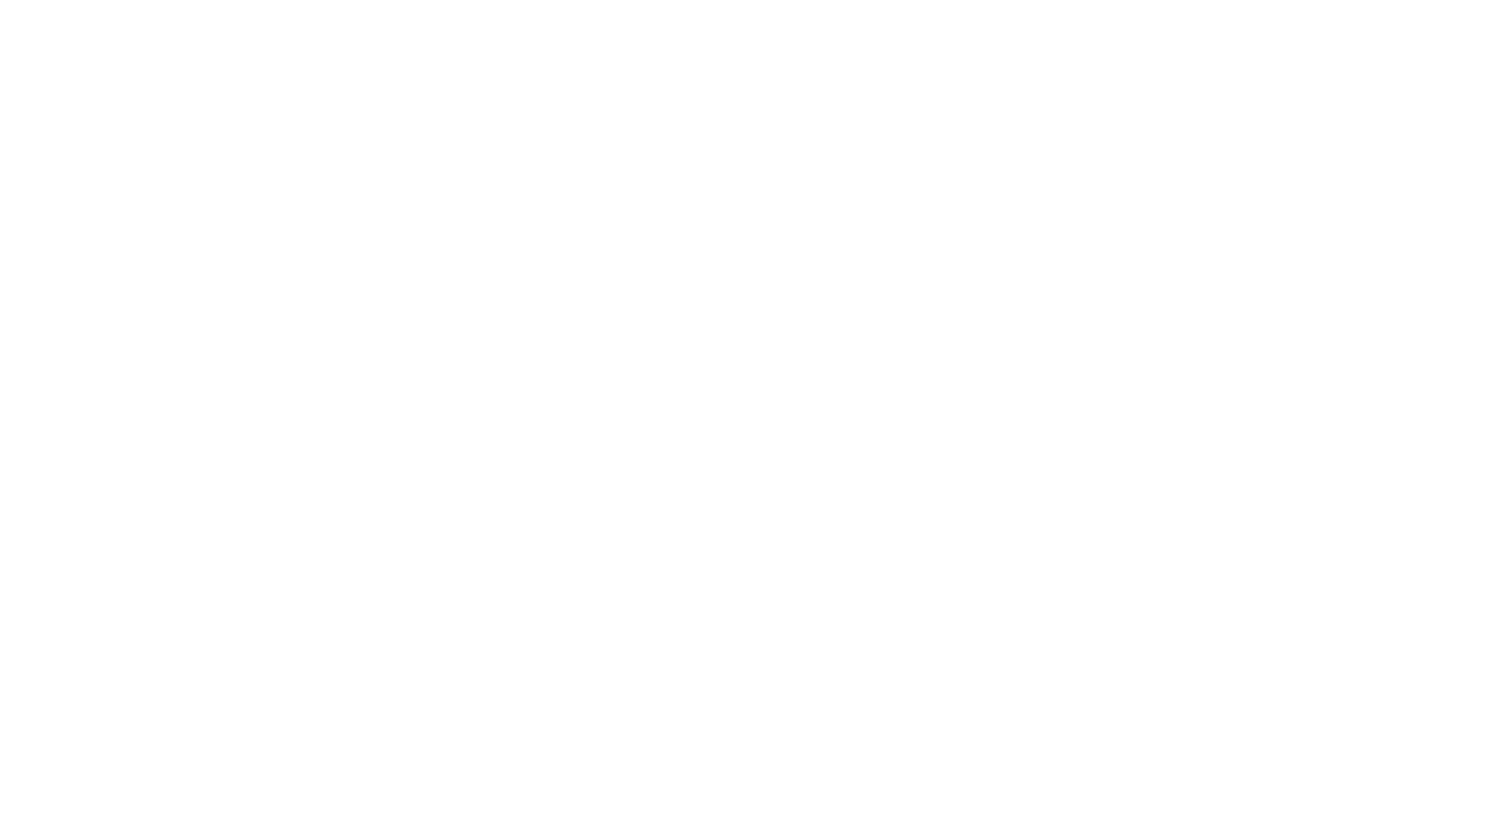 THE IDENTITY OF SHE